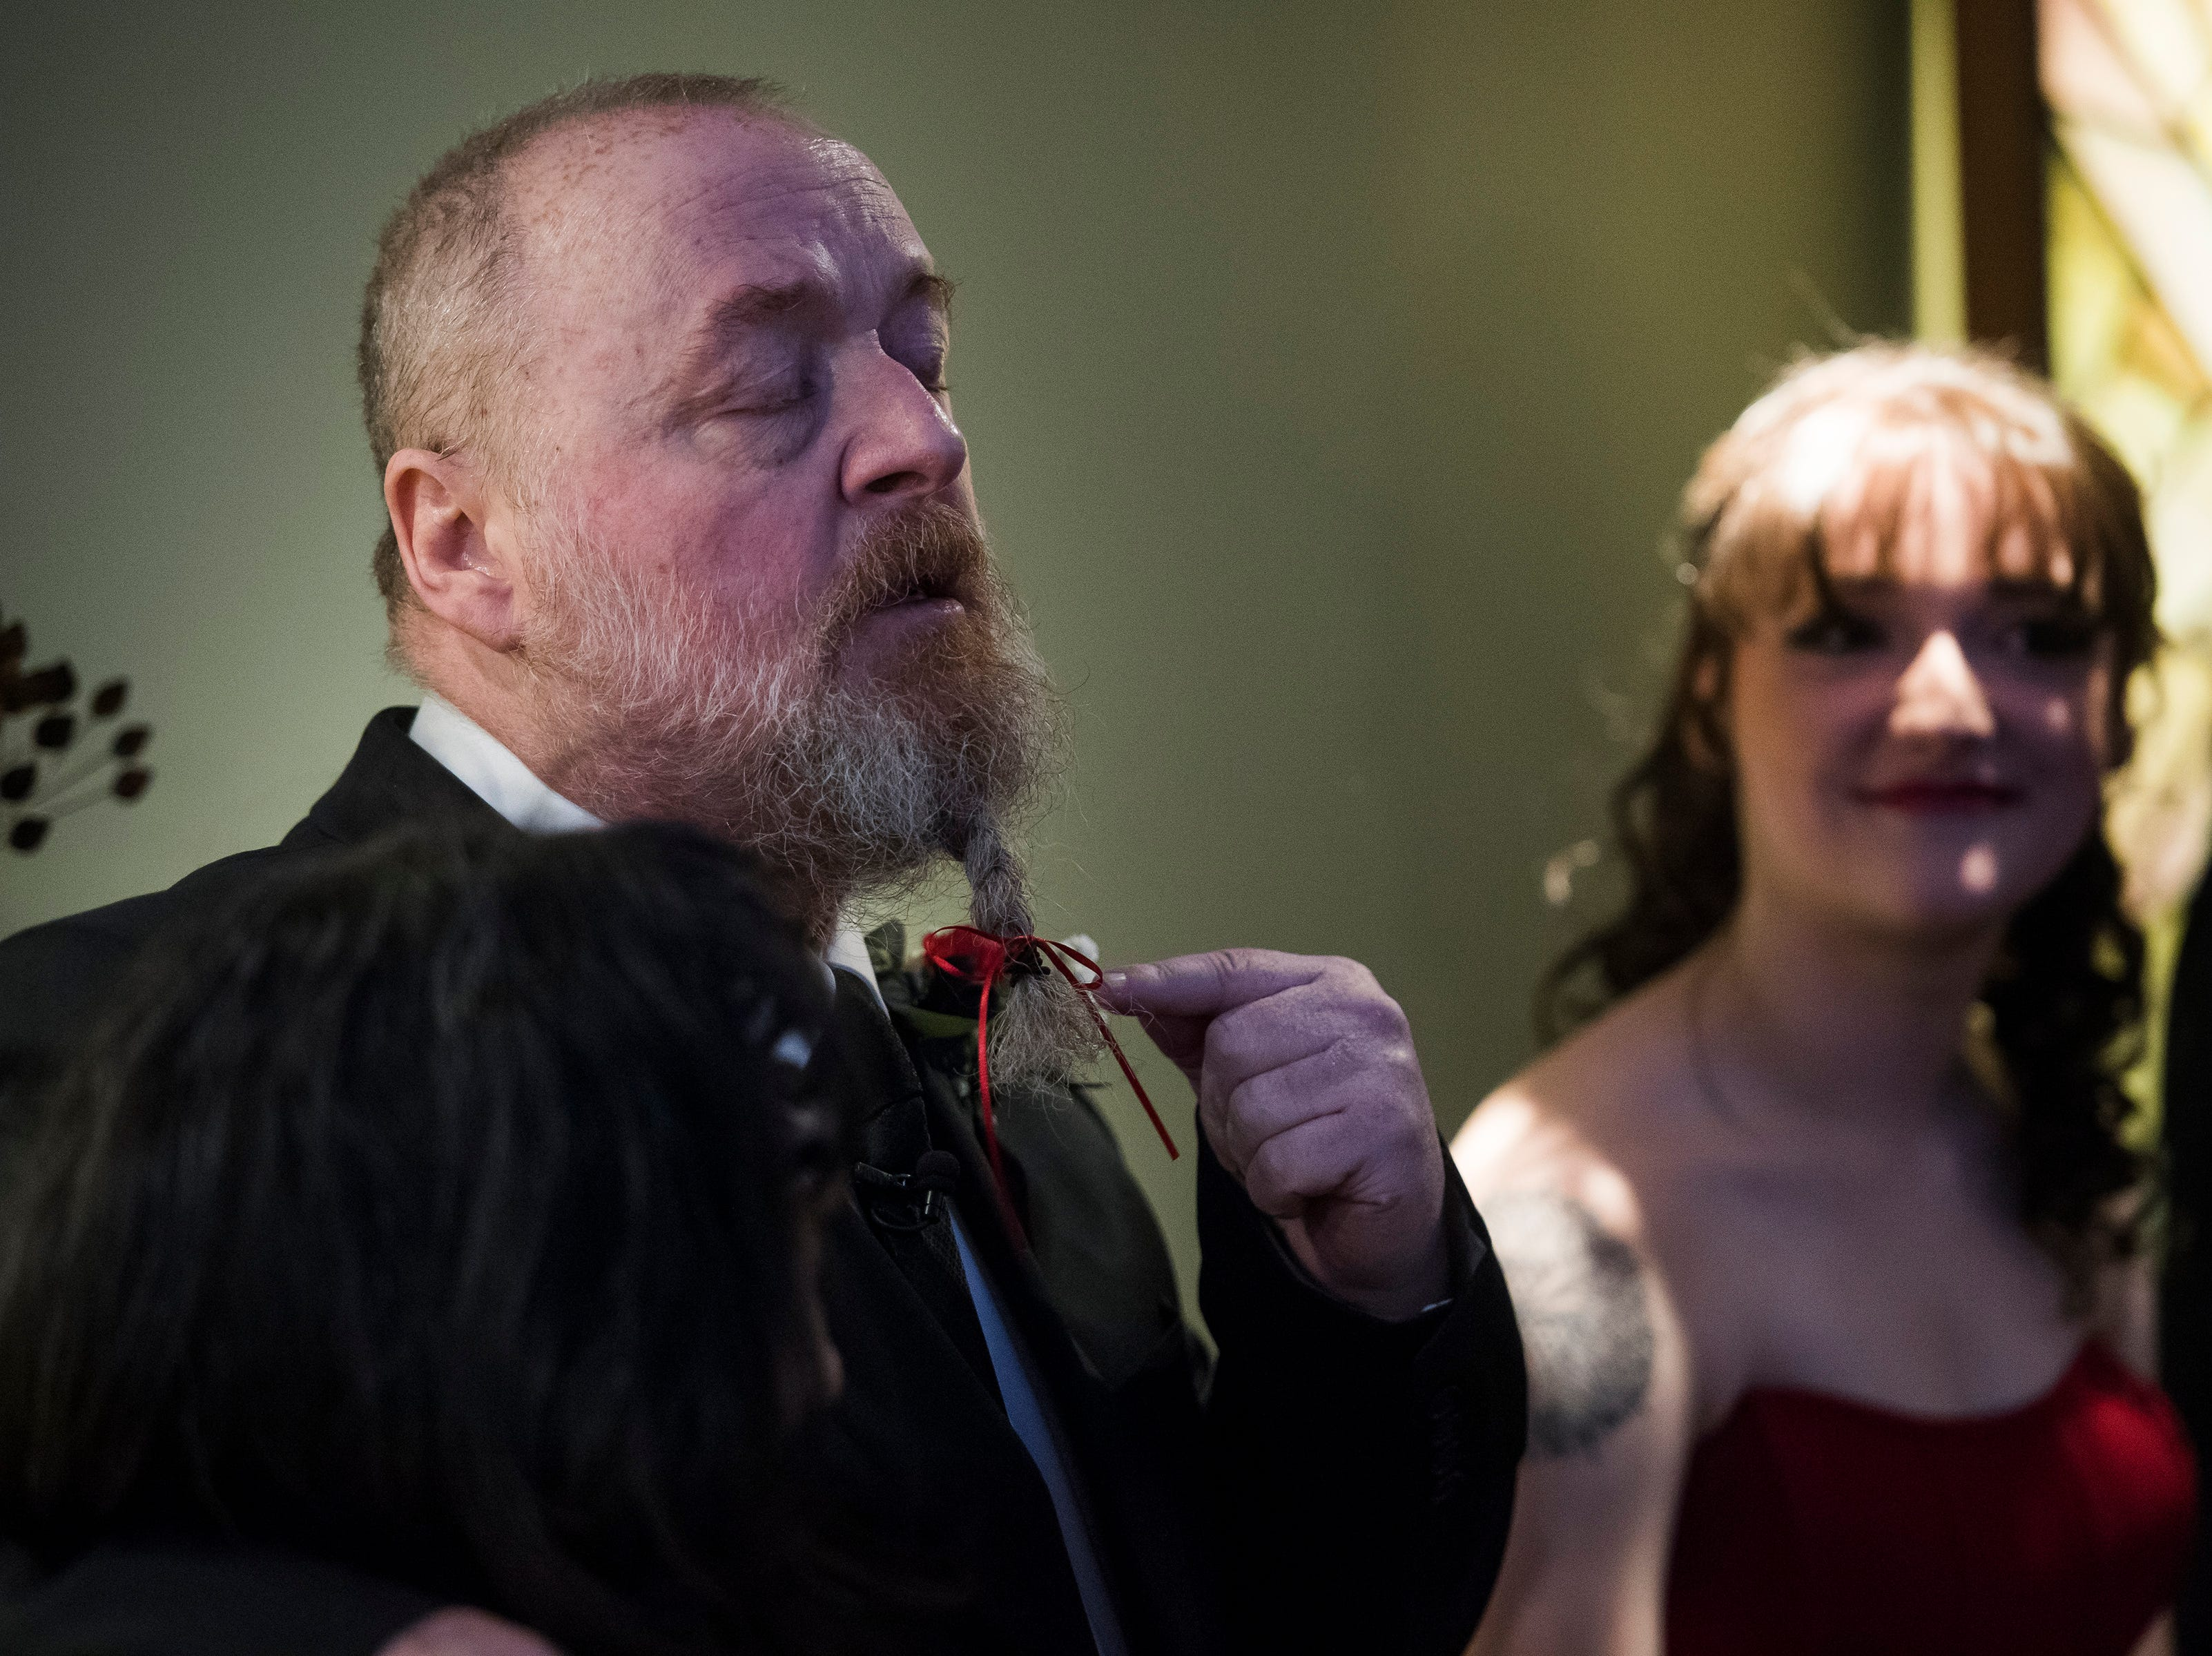 Father of the bride Paul Justice gives speech and points out his beard, braided by his daughter, at the beginning of Grace Justice and James Christian's wedding on Thursday, Feb. 14, 2019, at UCHealth Poudre Valley Hospital in Fort Collins, Colo.